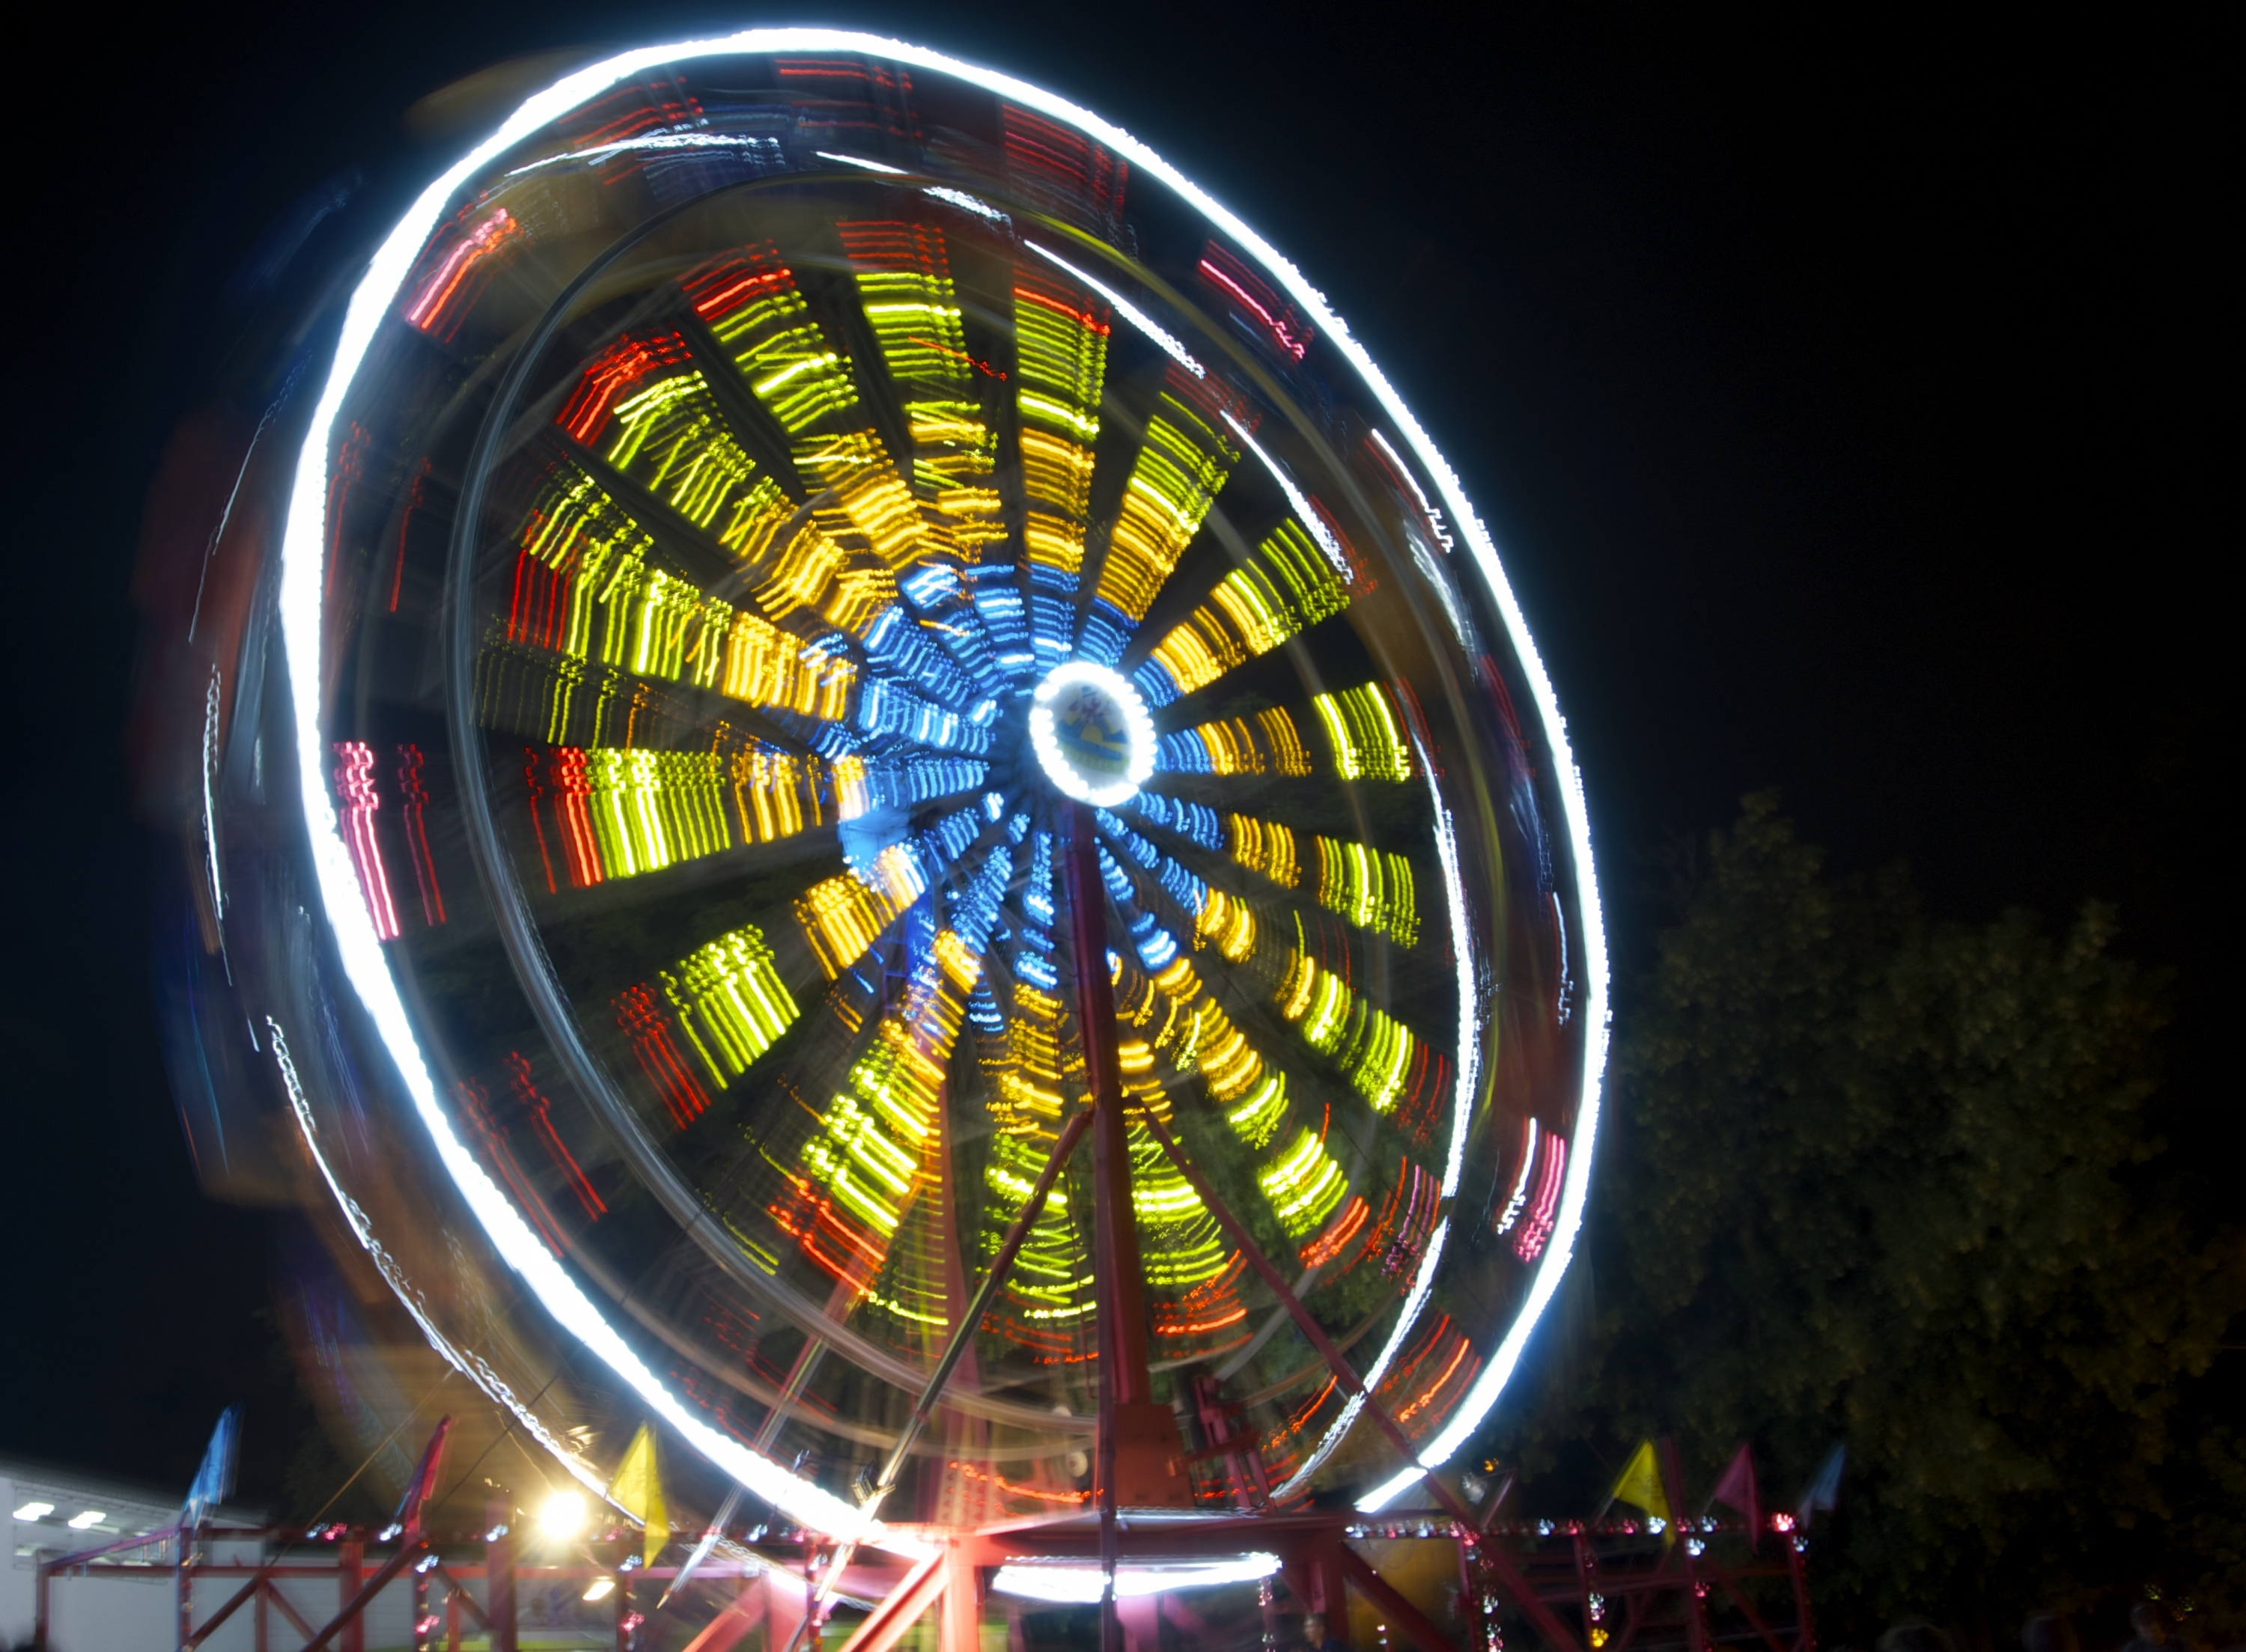 Ferris wheel at night.